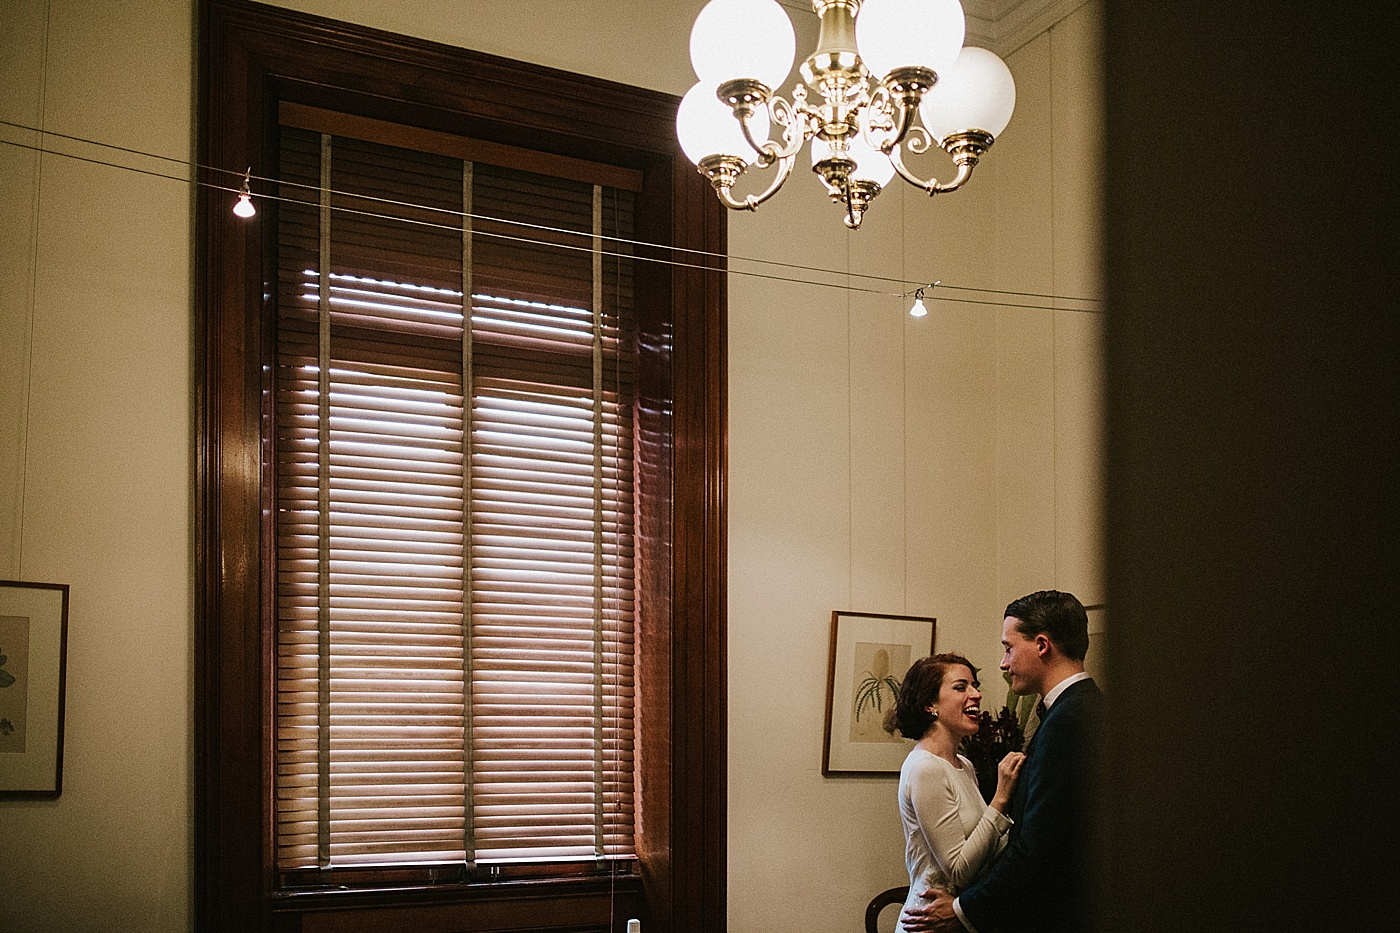 Emma&Morgan_Melbourne-Vintage-Elegant-Fun-CBD-Small-Elopement-Wedding_Melbourne-Wedding-Photography-28